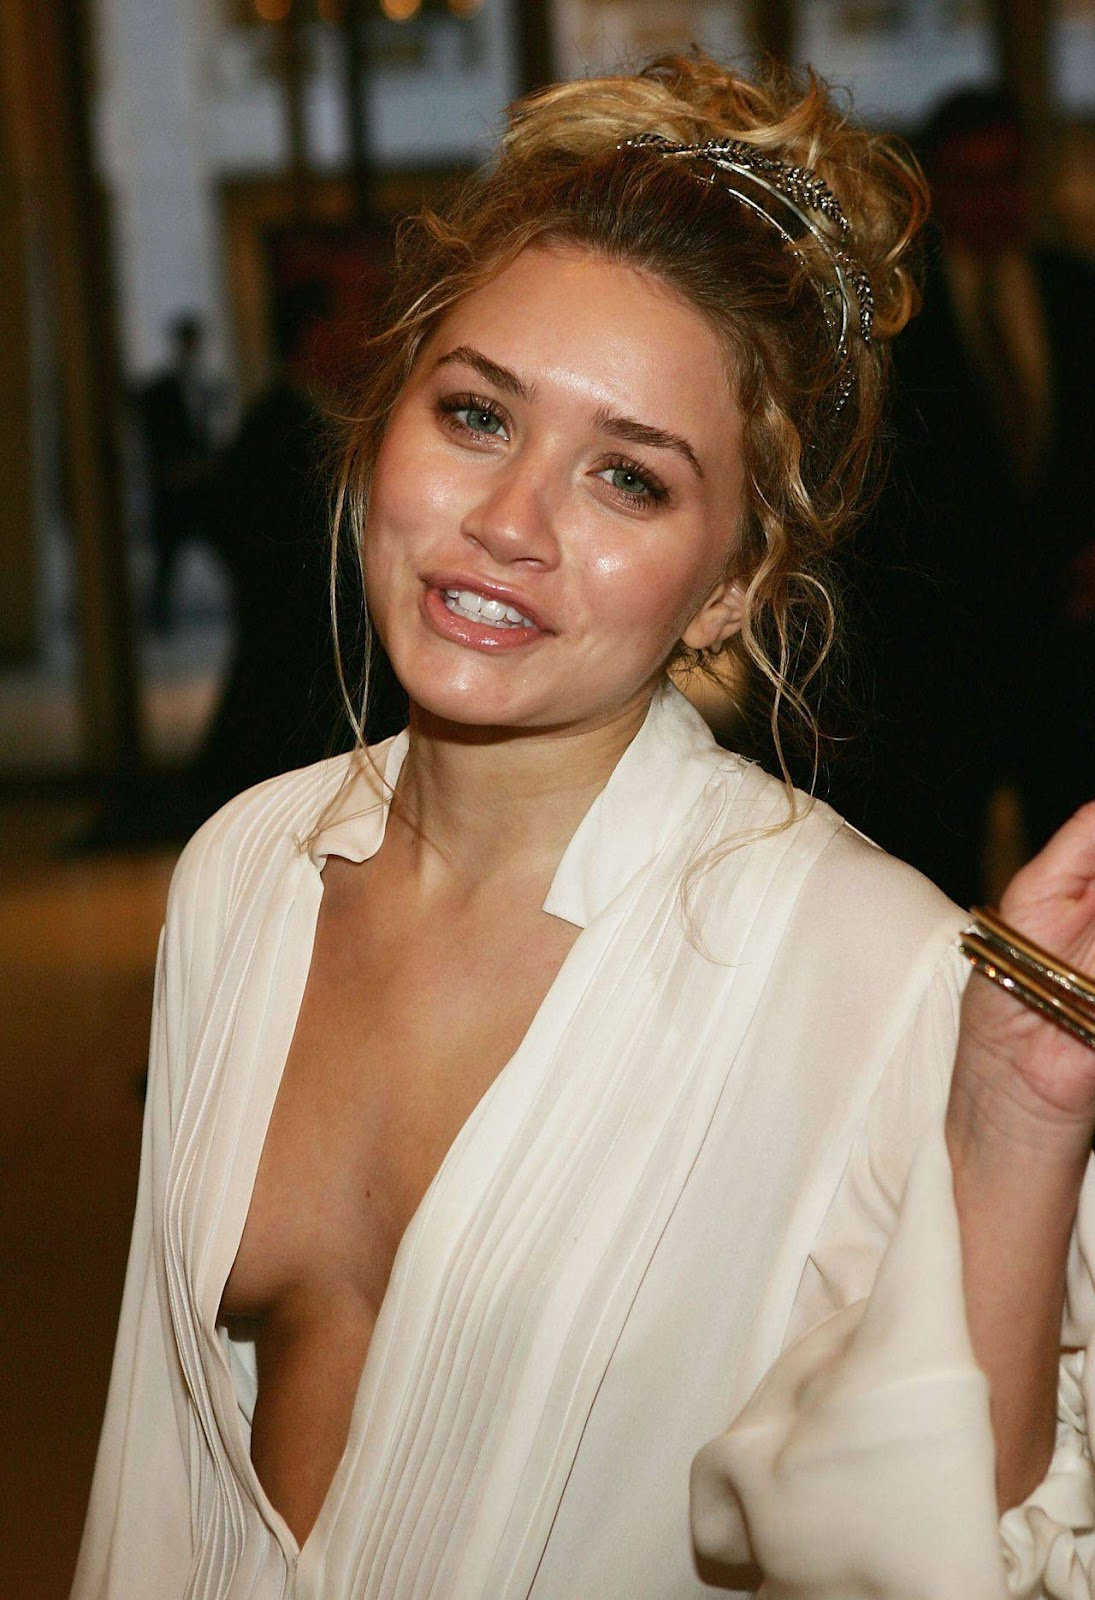 http://1.bp.blogspot.com/-113Cx8CHn2E/T2APPXexYMI/AAAAAAAAArA/Cx48J_FGwgE/s1600/Ashley+Olsen-Hot-4.jpg